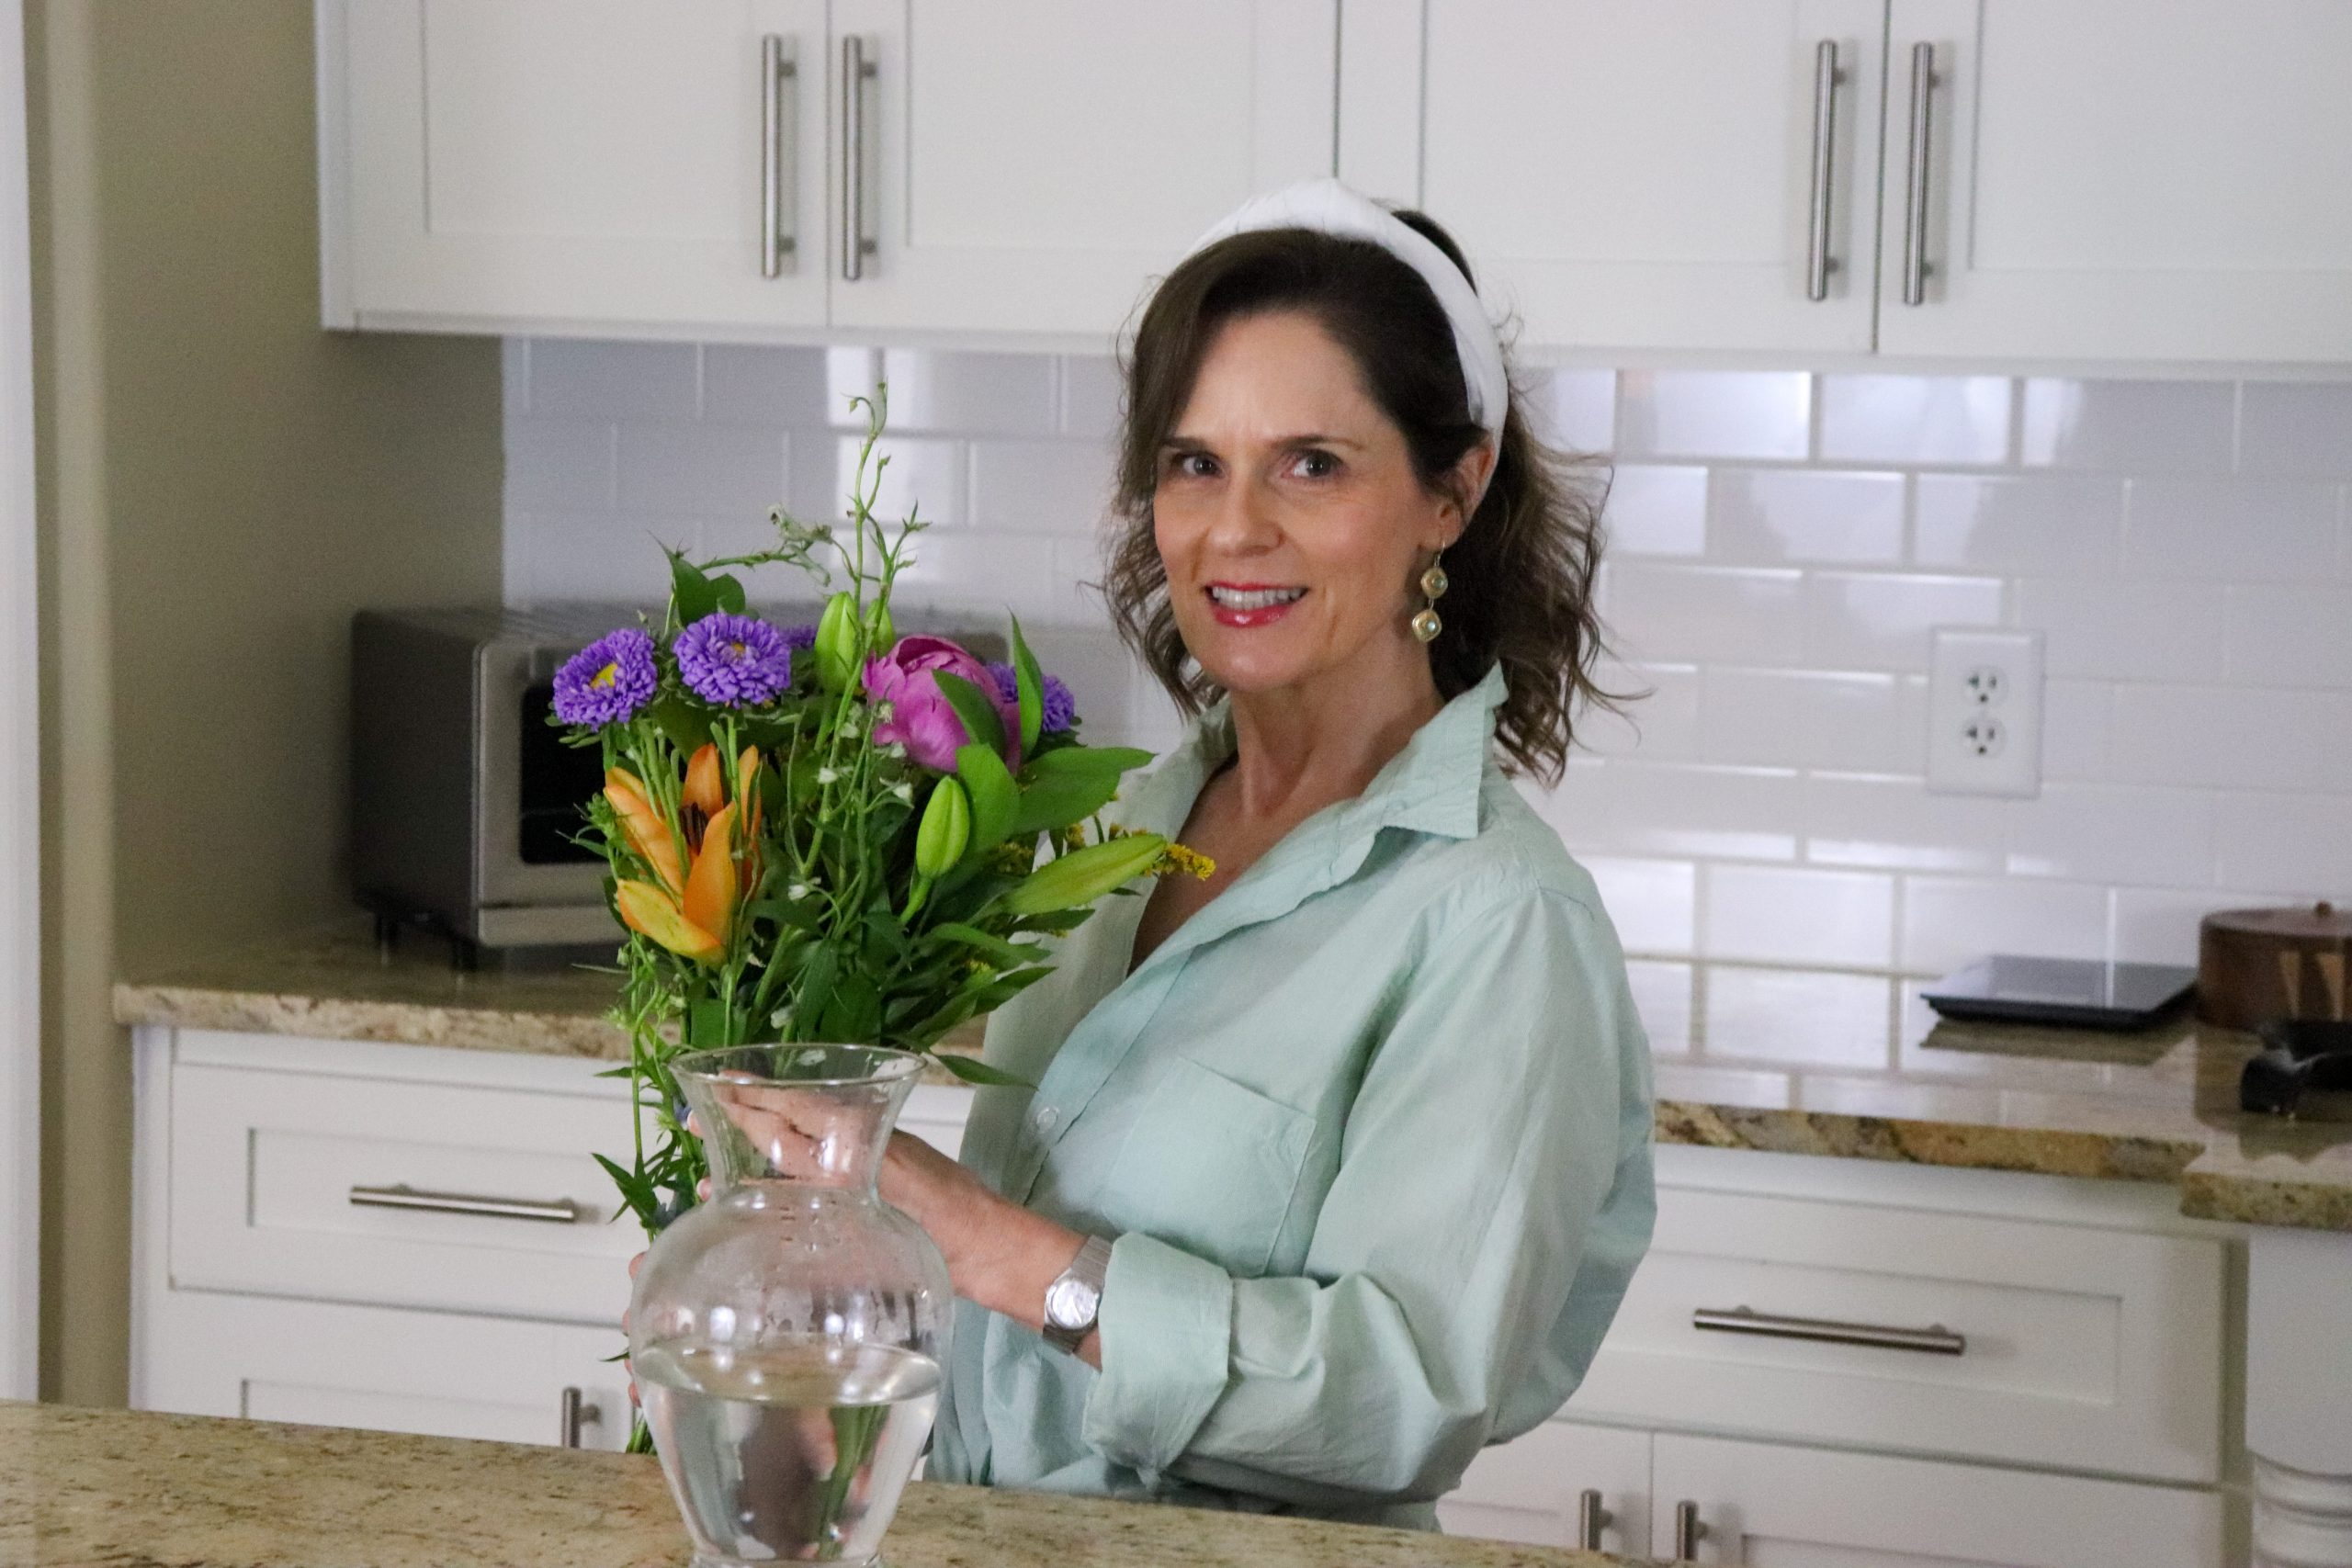 woman over 50 wearing a green shirt holding a bouquet of May flowers